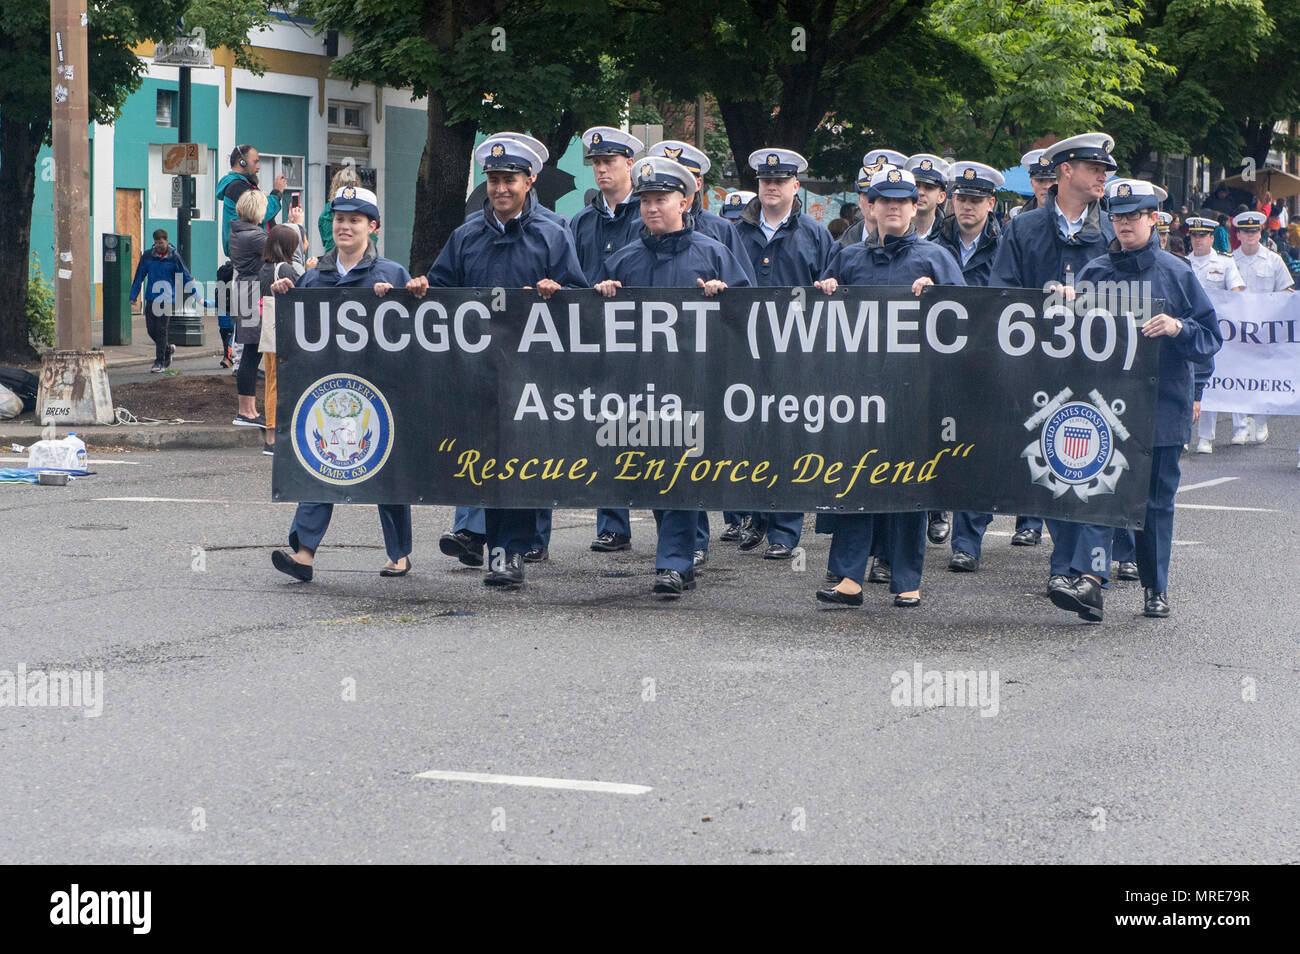 170610-N-ZP059-107 PORTLAND Ore., (June 10, 2017) – U.S Coast Guard members assigned to the medium endurance cutter Alert (WMEC-630) walk along the Rose Festival Parade route in Portland, Ore., during Portland Rose Festival Fleet Week. The festival and Portland Fleet Week are a celebration of the sea services with Sailors, Marines, and Coast Guard members from the U.S. and Canada making the city a port of call. (U.S. Navy photo by Mass Communication Specialist 2nd Class Jacob G. Sisco/Released) Stock Photo